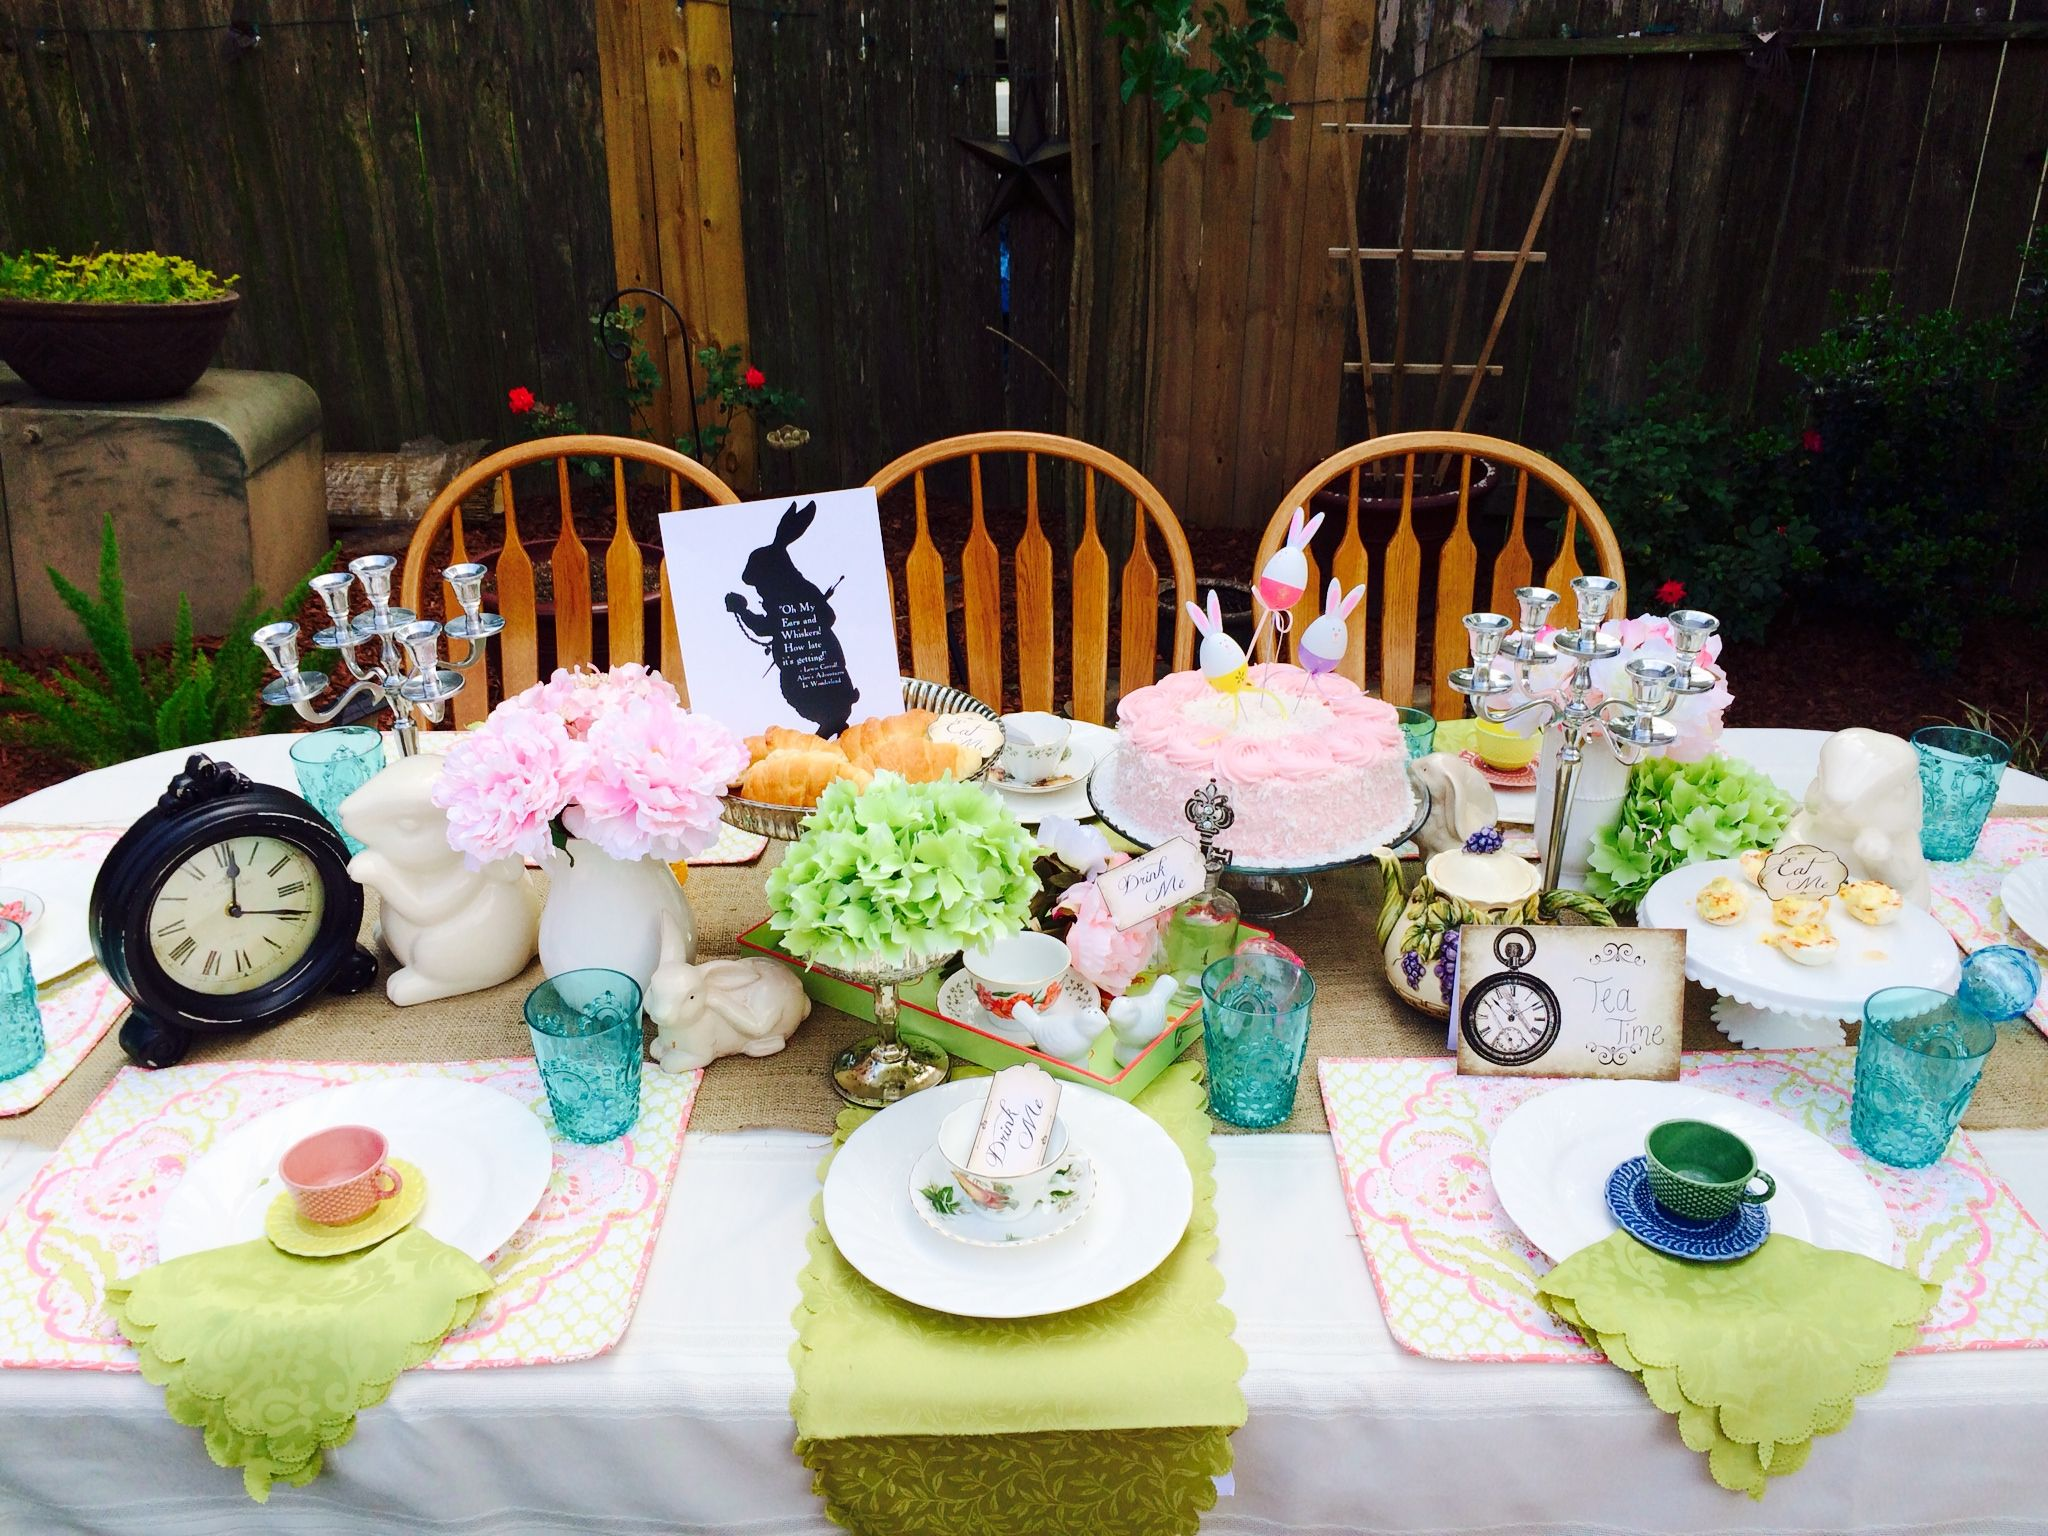 85d788541af0 Easter Tea Party   Alice in Wonderland Tea Party   Mad Hatter Tea Party  with www